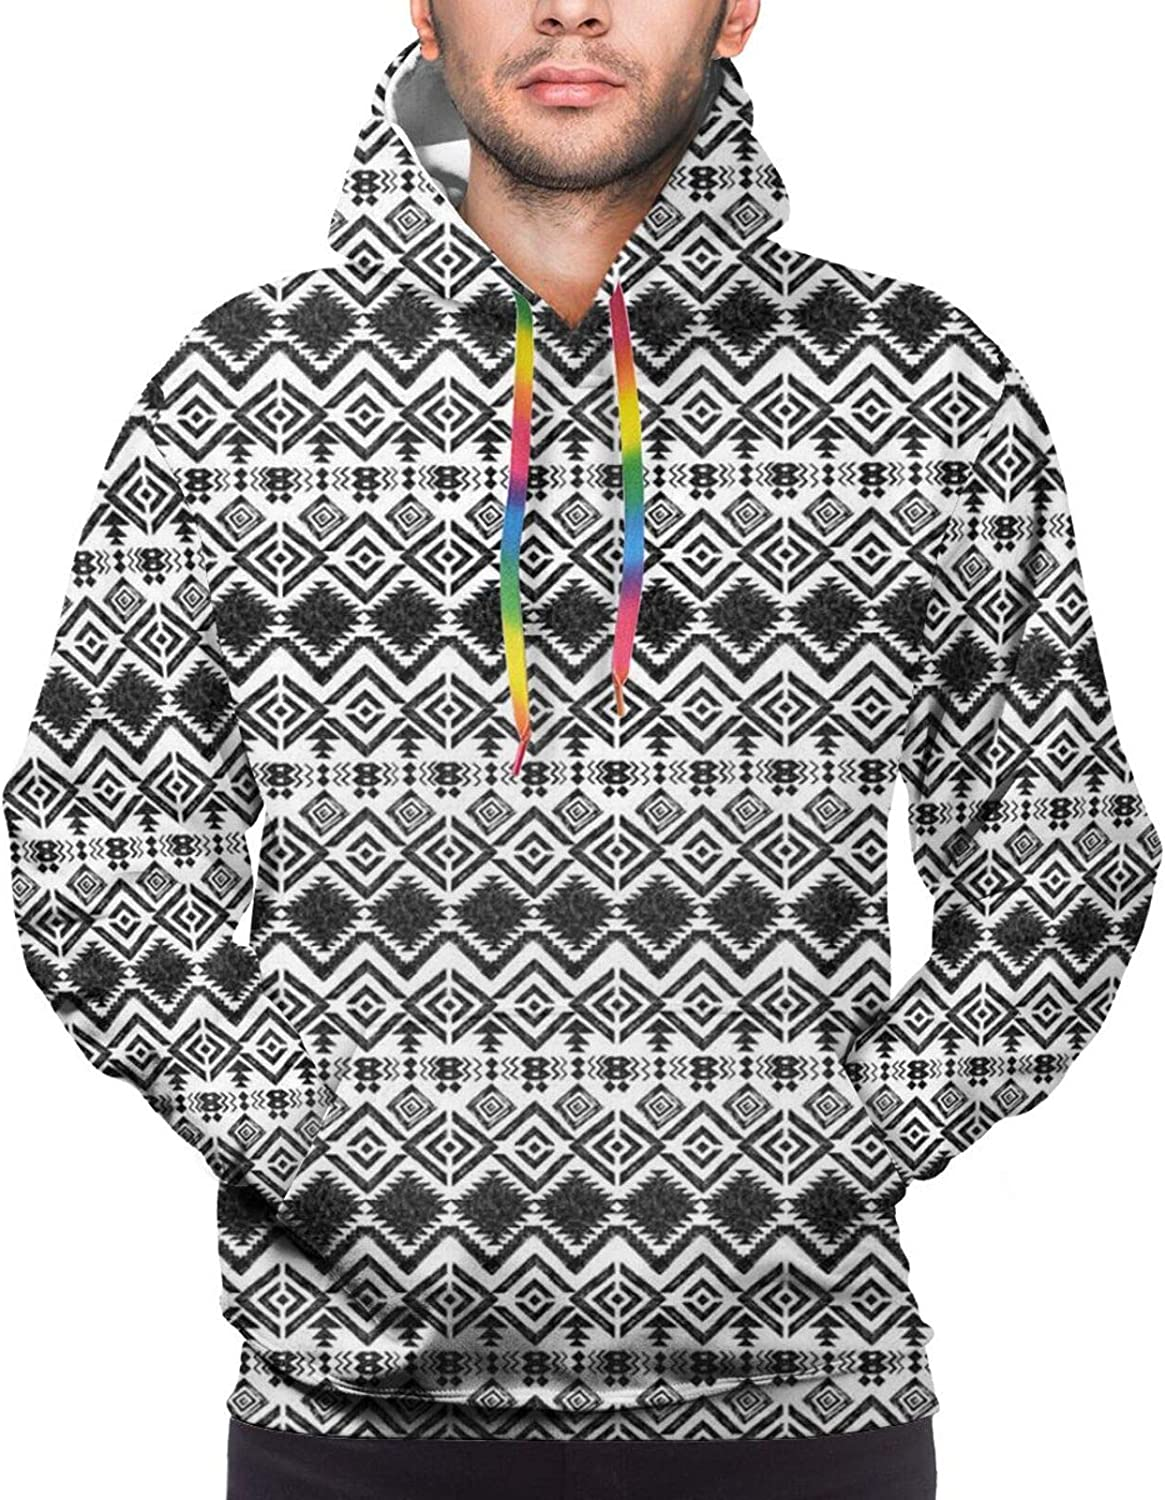 Men's Hoodies Sweatshirts,Black and White Geometrical Backdrop with Hibiscus and Birds of Paradise Flower